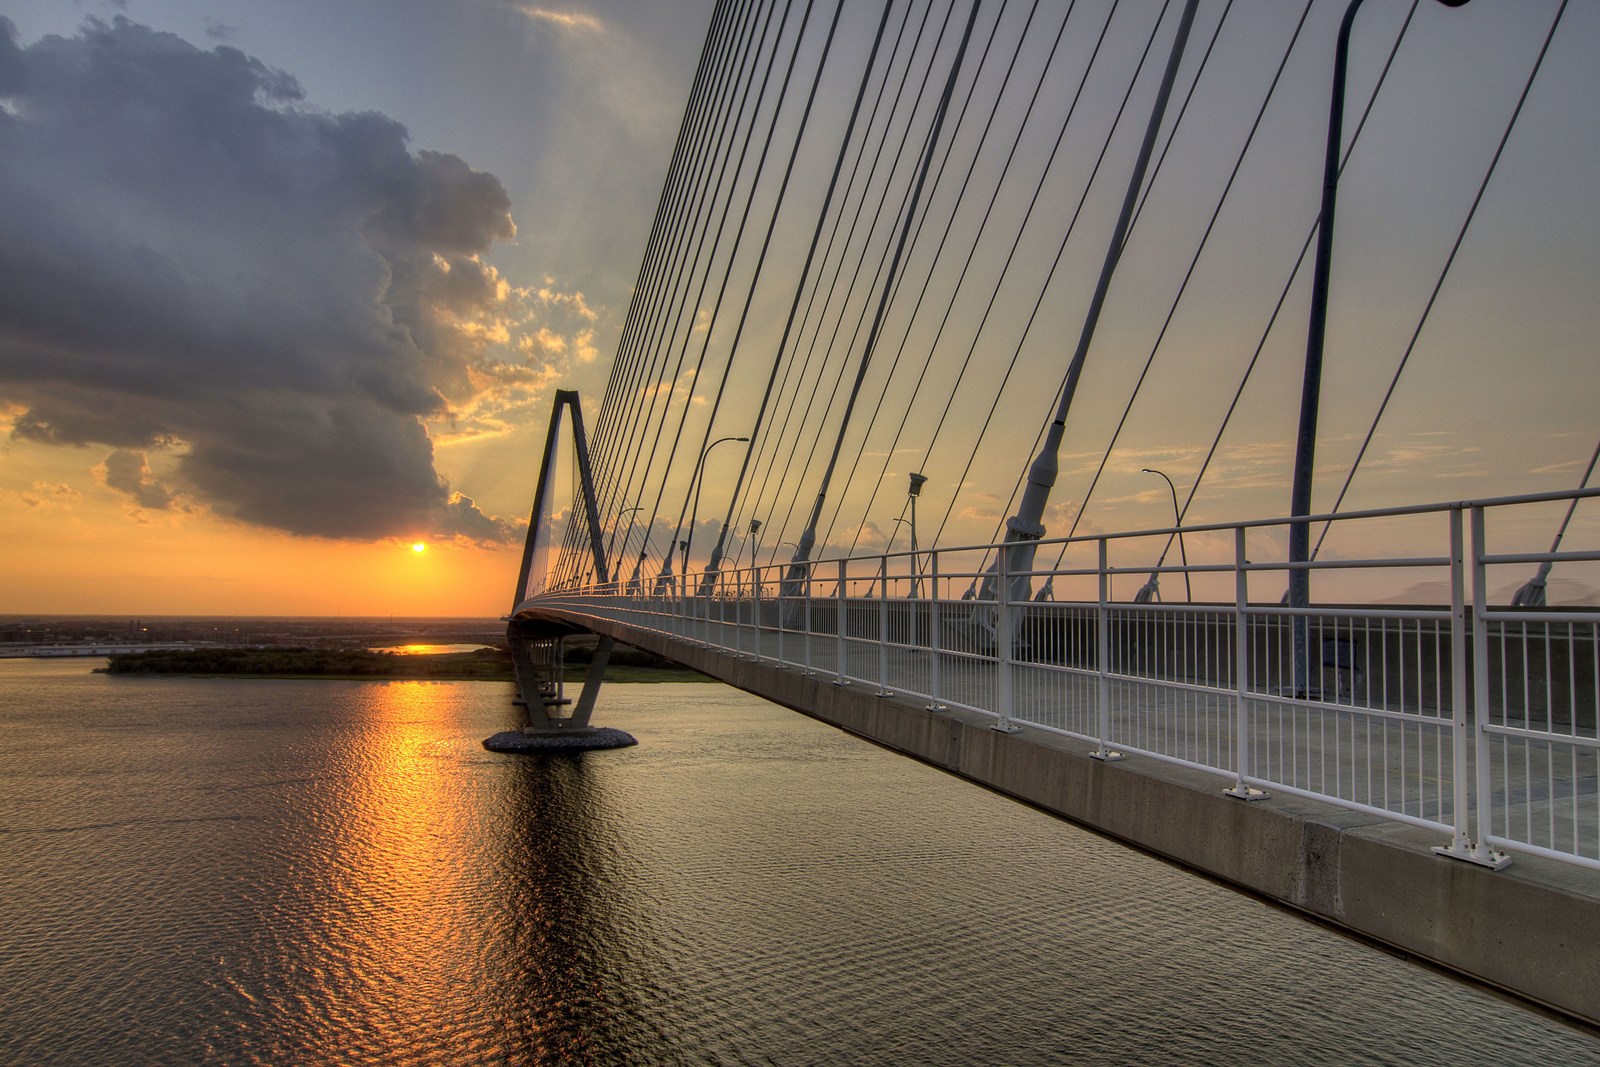 A brilliant sunset across the Cooper River, seen from Wonders' Way on the Arthur Ravenel, Jr. Bridge in Charleston, SC on Sunday, September 8, 2013. Copyright 2013 Jason Barnette